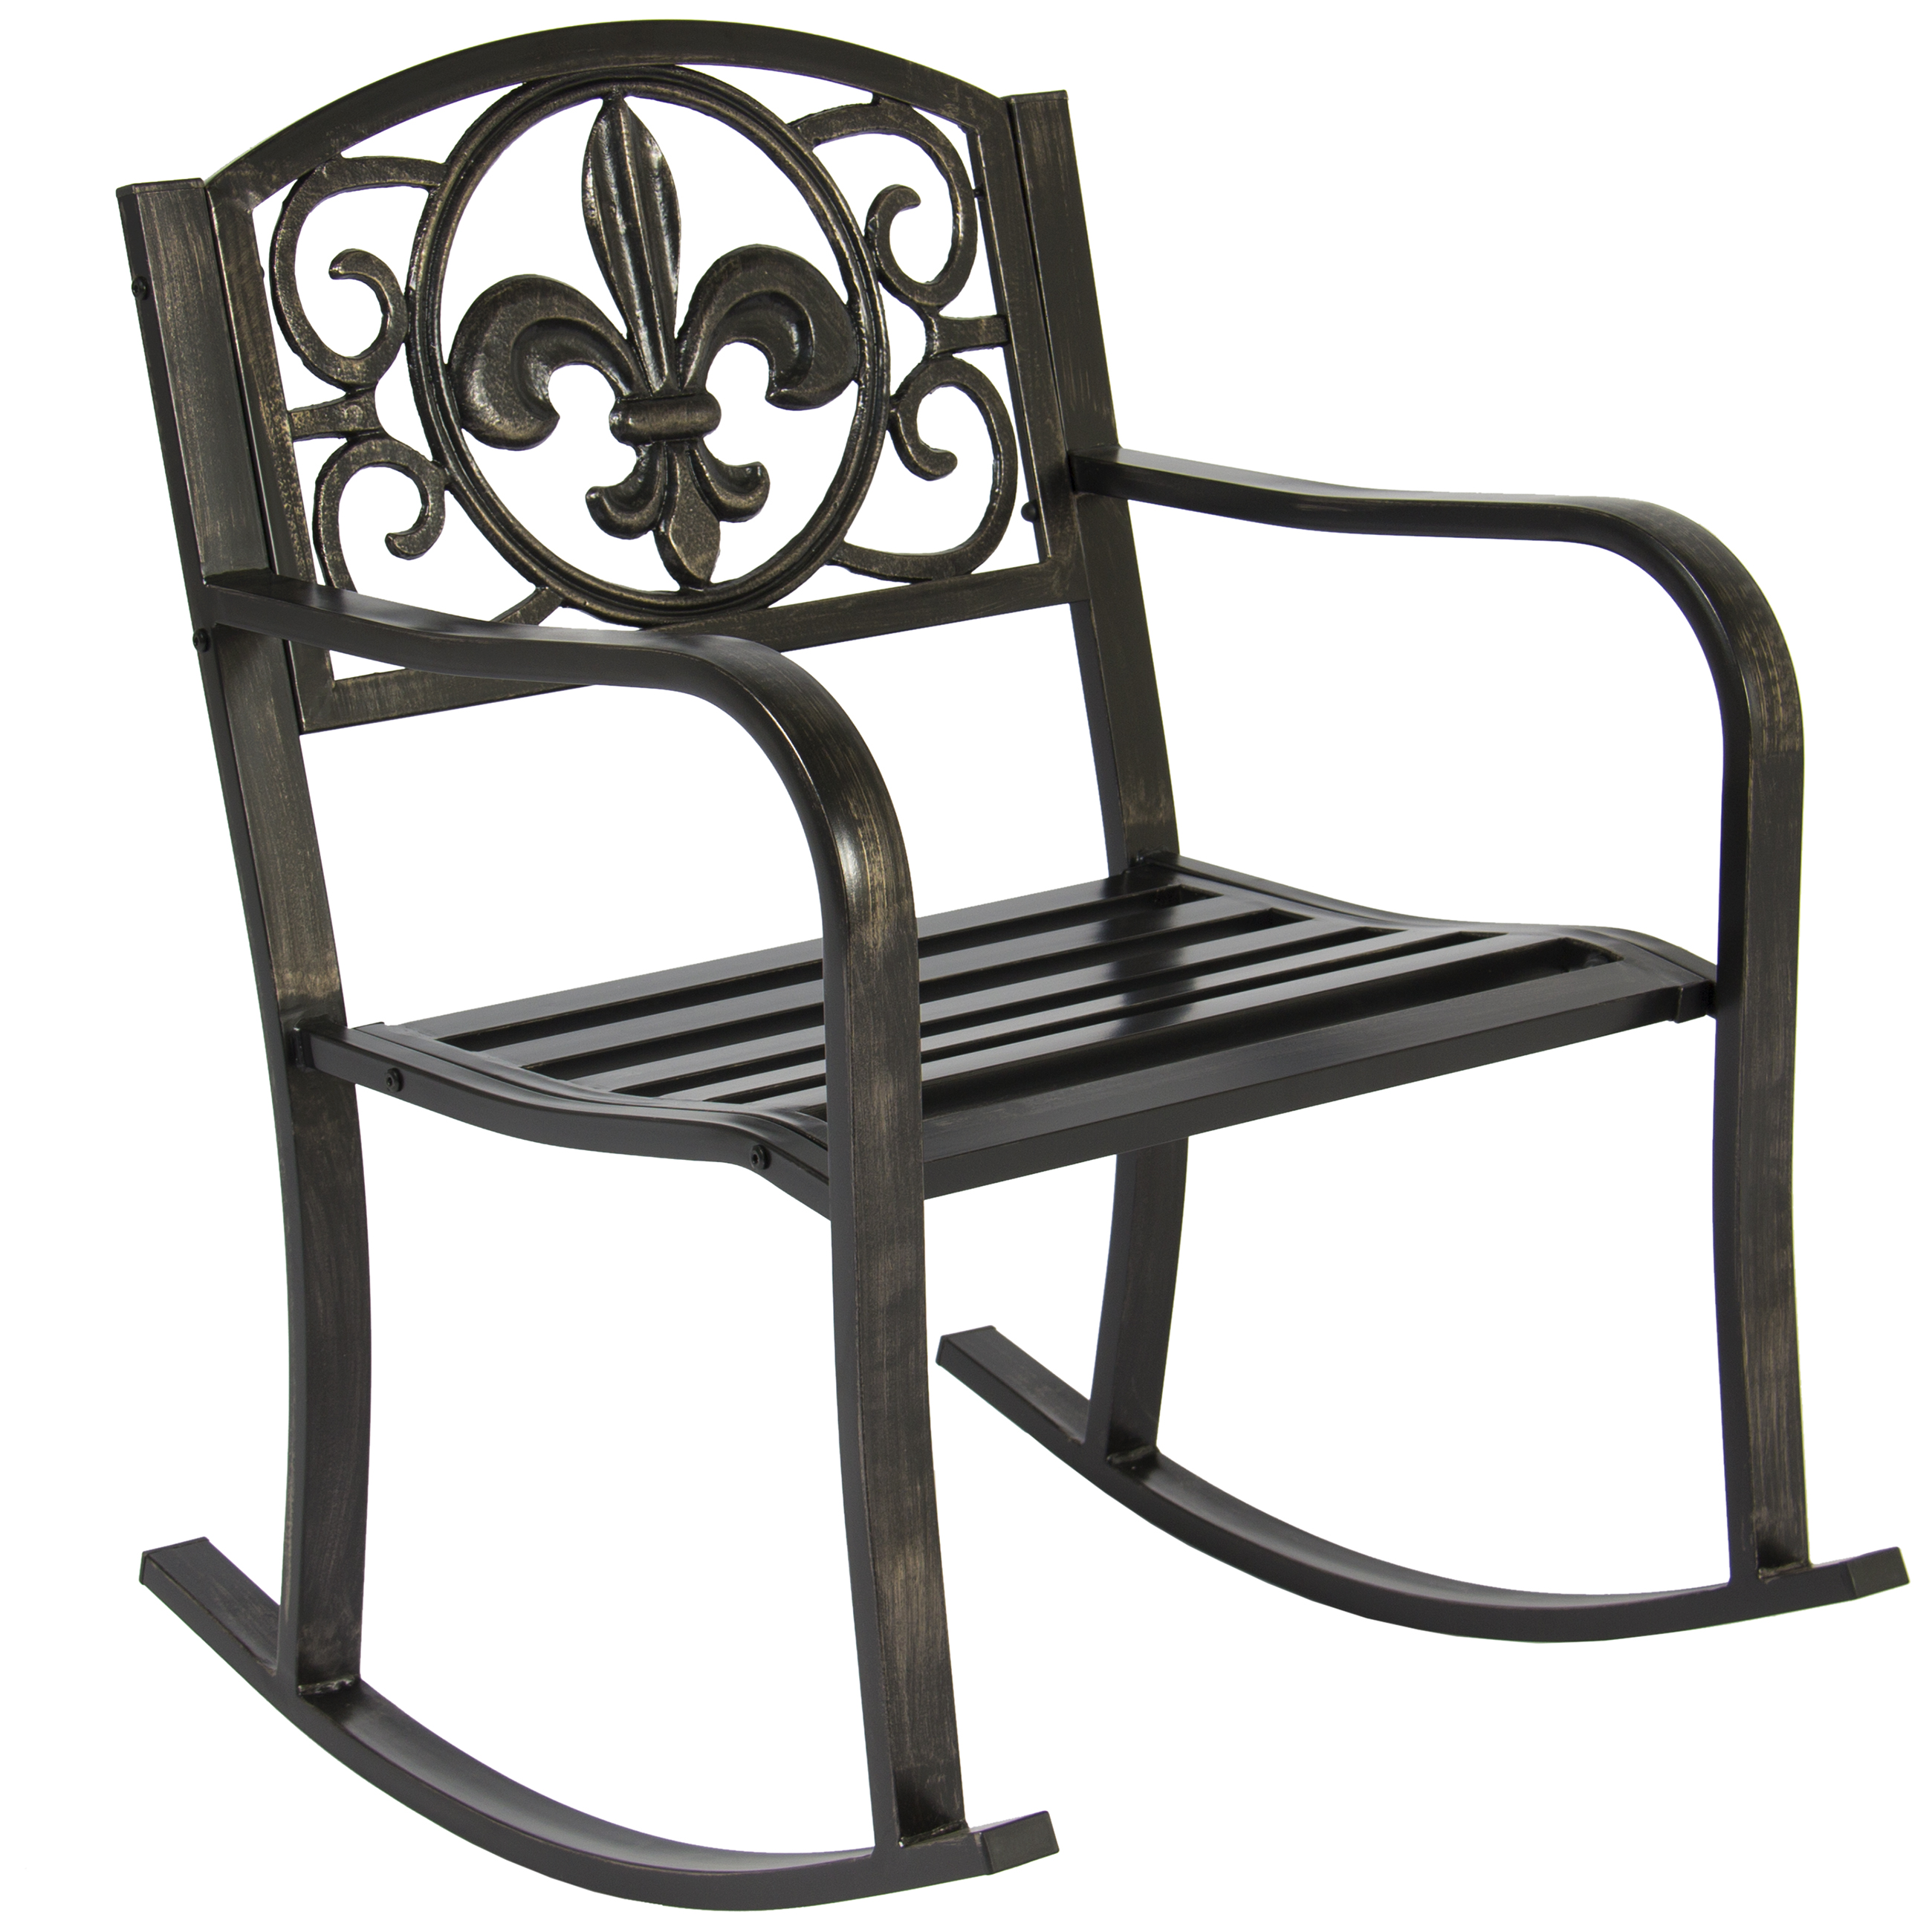 black rocking chairs captain dining best choice products metal chair seat for patio porch deck outdoor w scroll design bronze walmart com